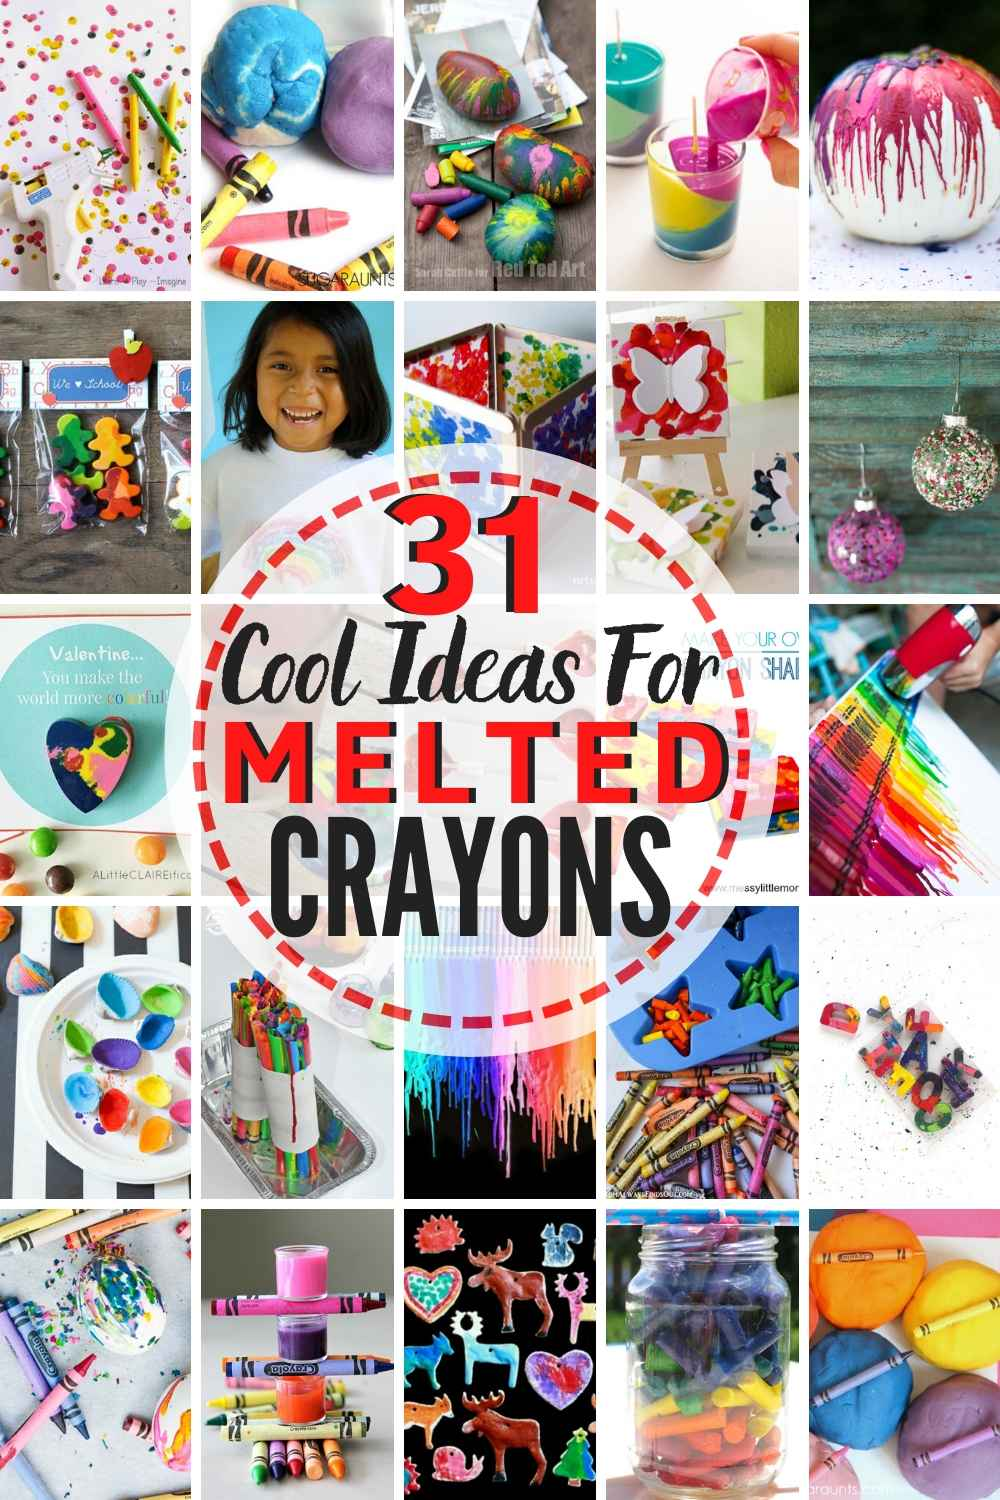 31 AWESOME Ideas For Melted Crayons!! If you have a bunch of melted Crayon Art & Craft Ideas To Try! Fun DIY Crayon Ideas For Everyone!